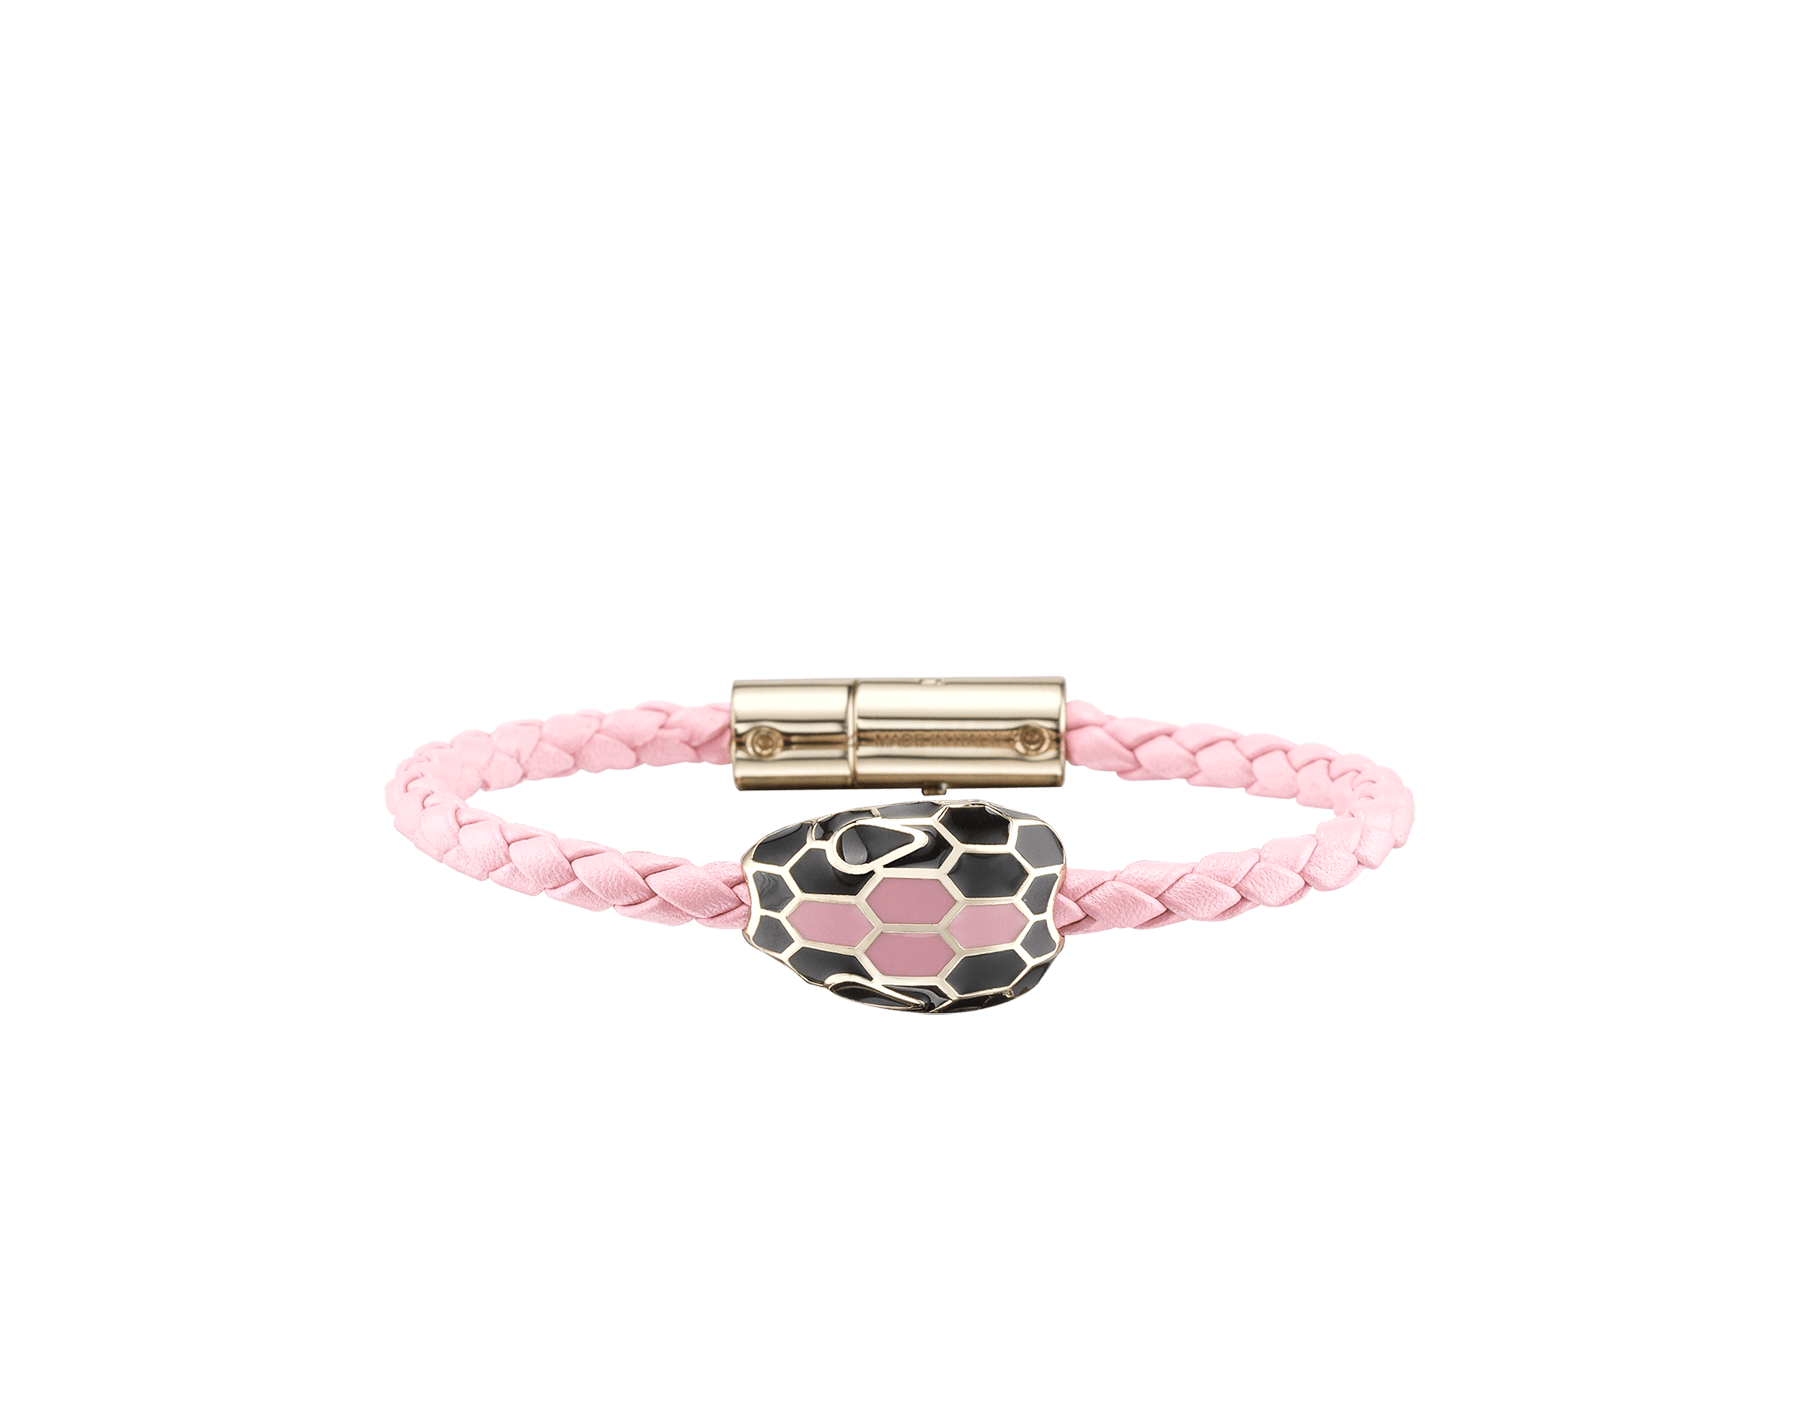 Serpenti Forever braid bracelet in flamingo quartz woven calf leather with an iconic snakehead décor in black and flamingo quartz enamel. SerpBraid-WCL-FQ image 1